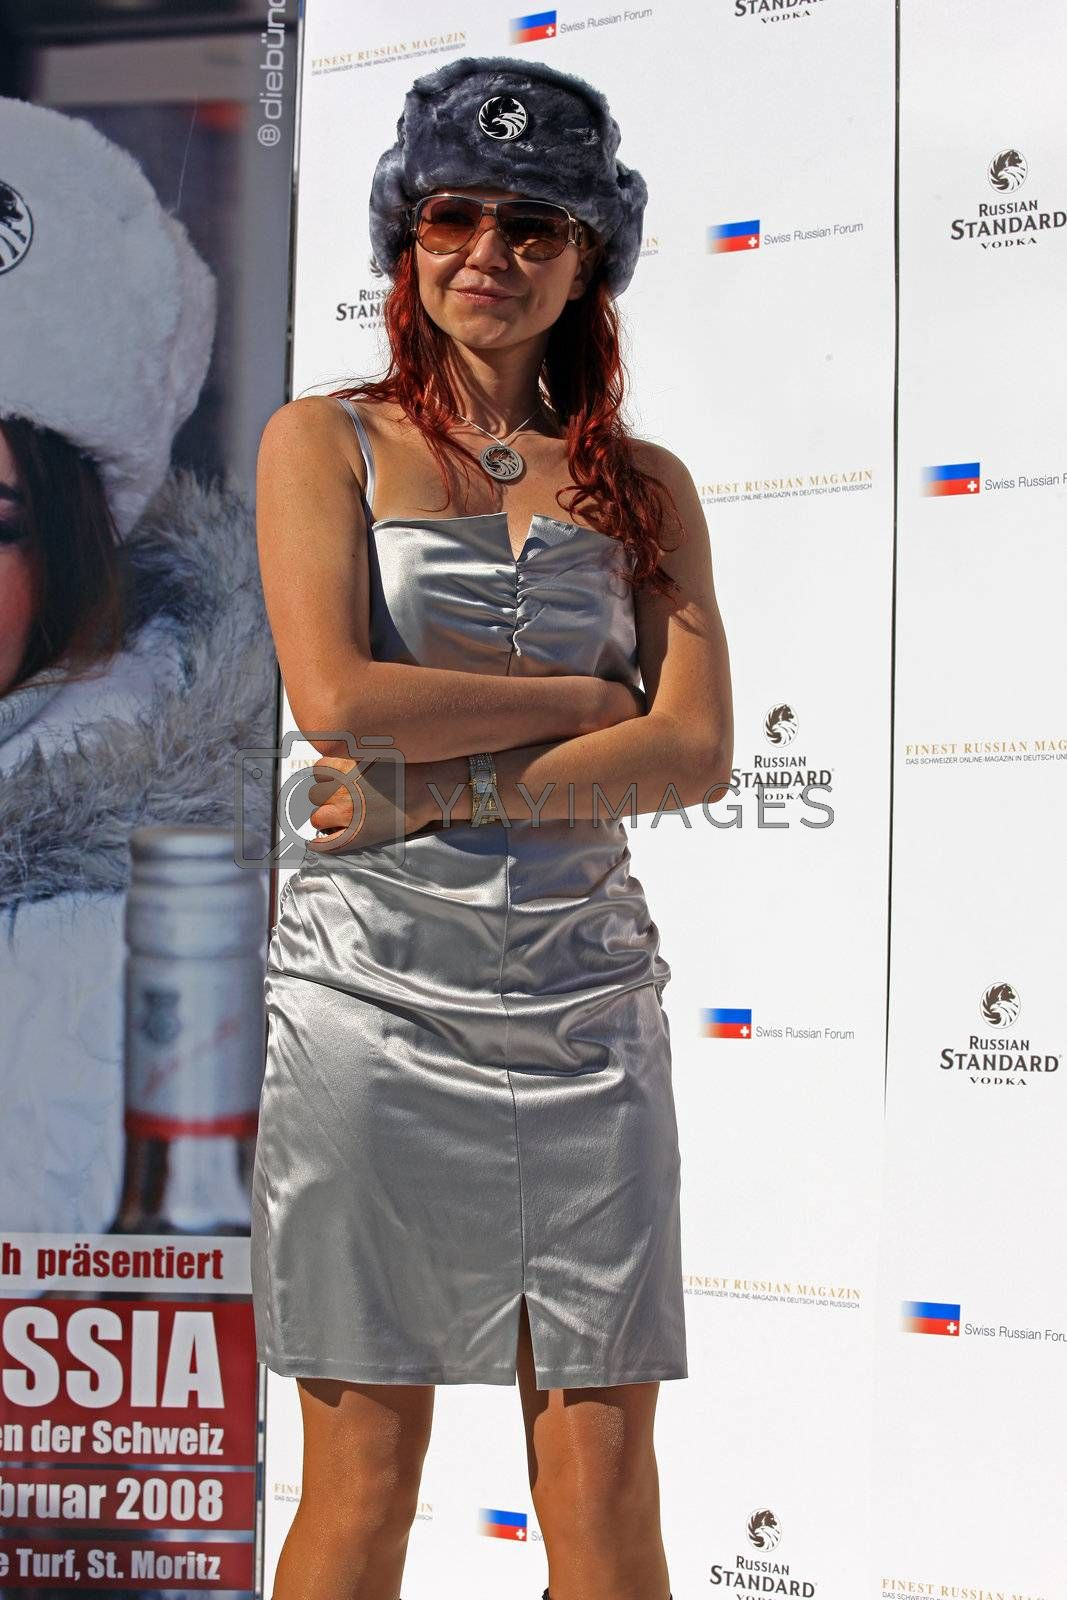 Royalty free image of Miss Russia finalists 2008 in St. Moritz by monner